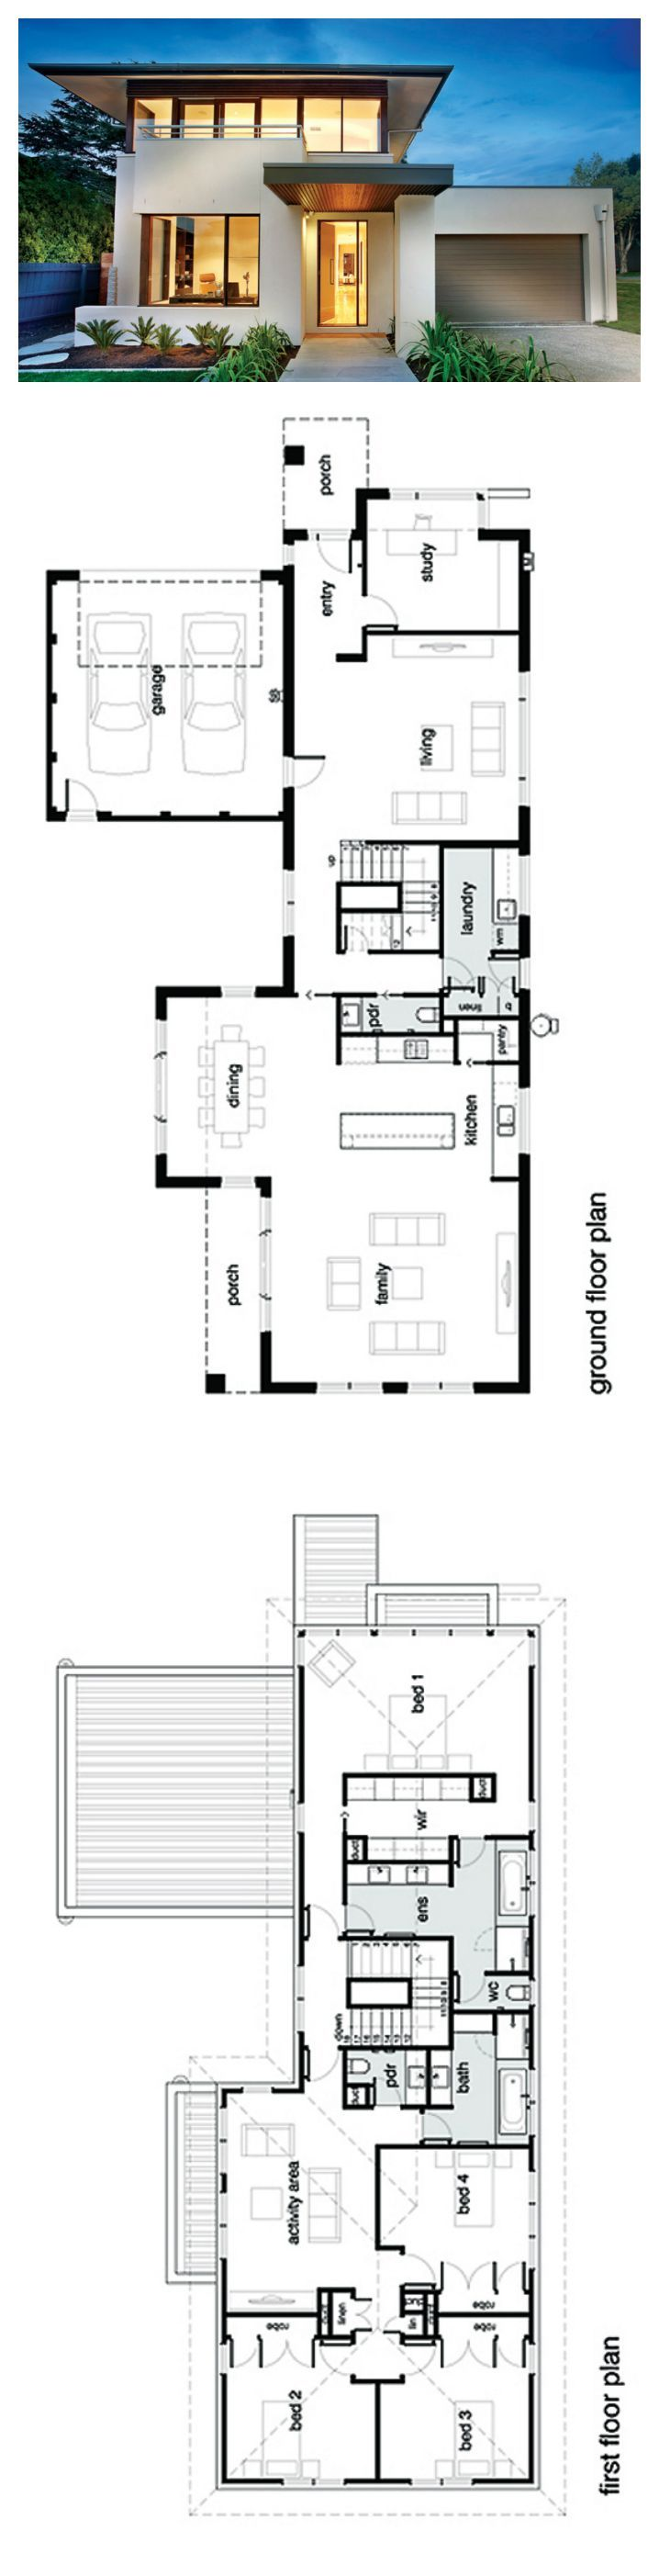 plan sf 4 bed study 25 bath